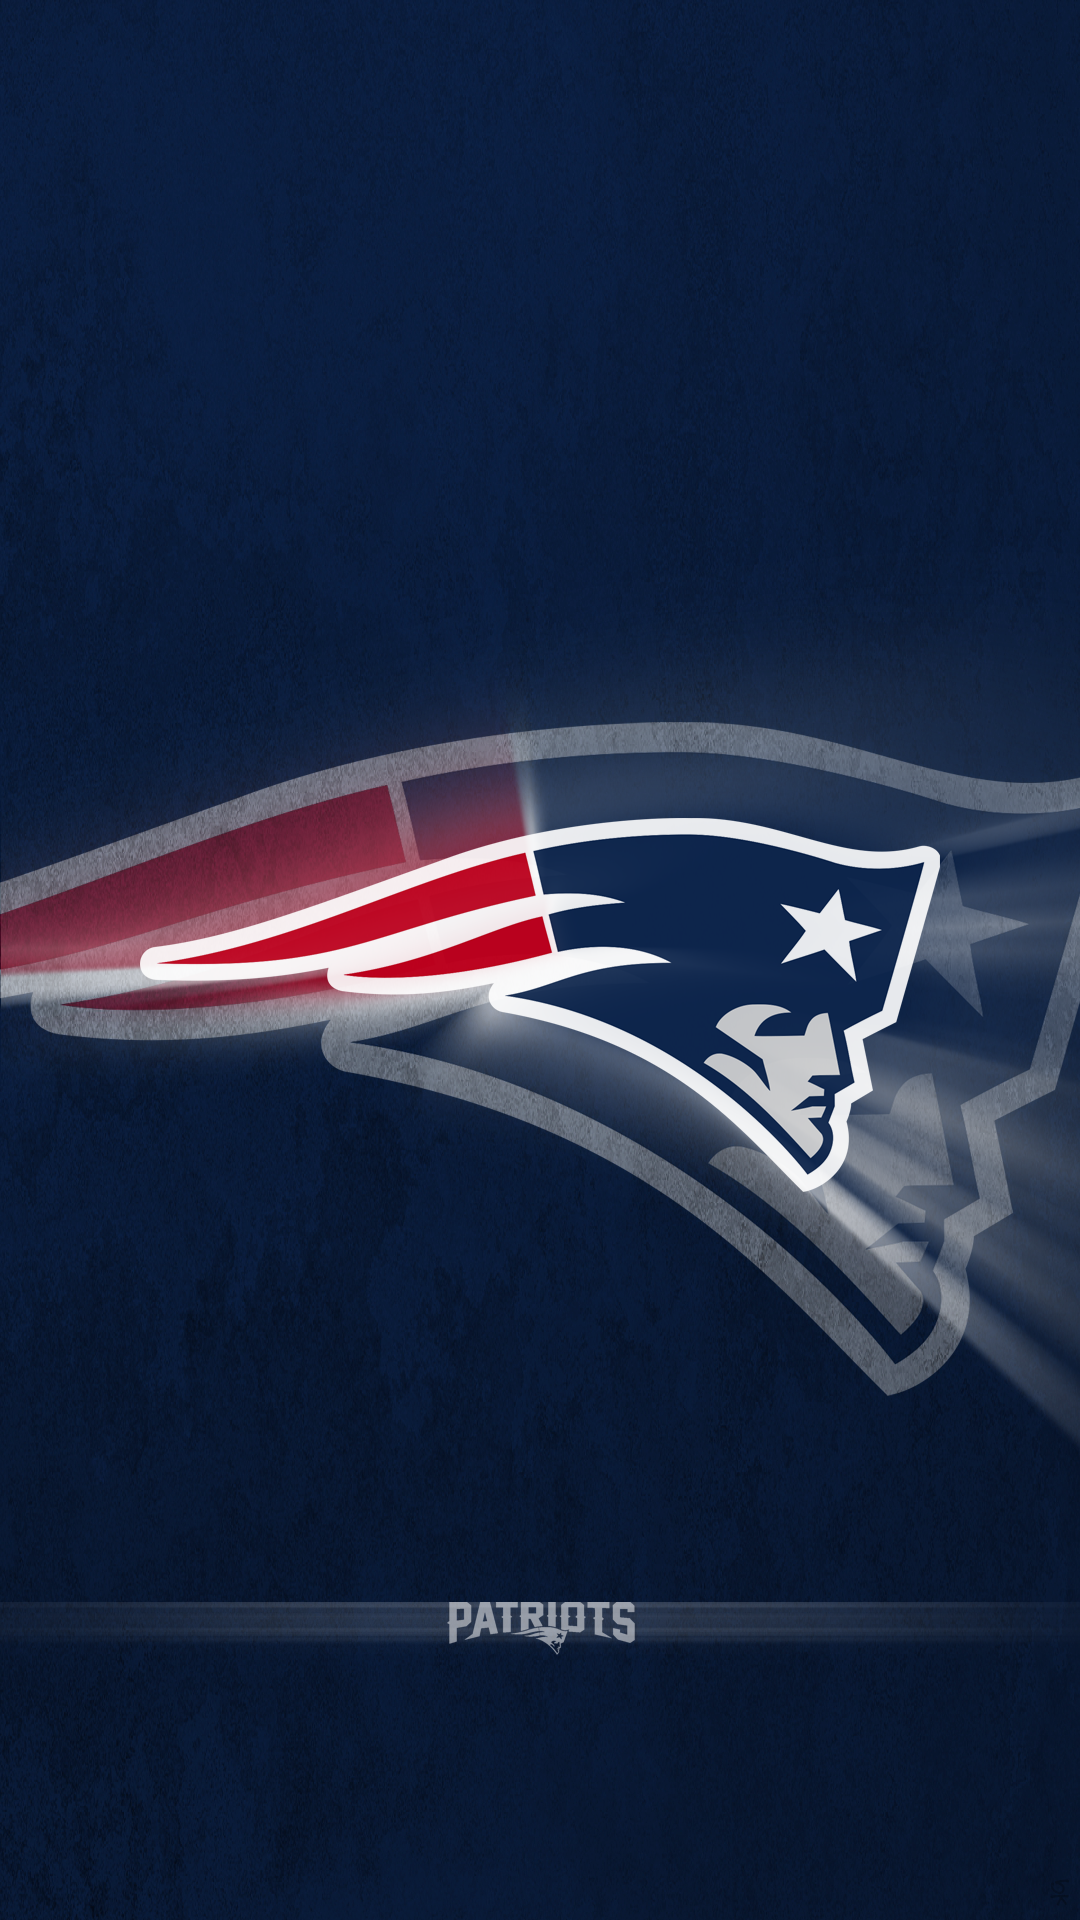 Wallpaper iphone patriots - Superbowl Xlix Wallpapers For Iphone And Ipad